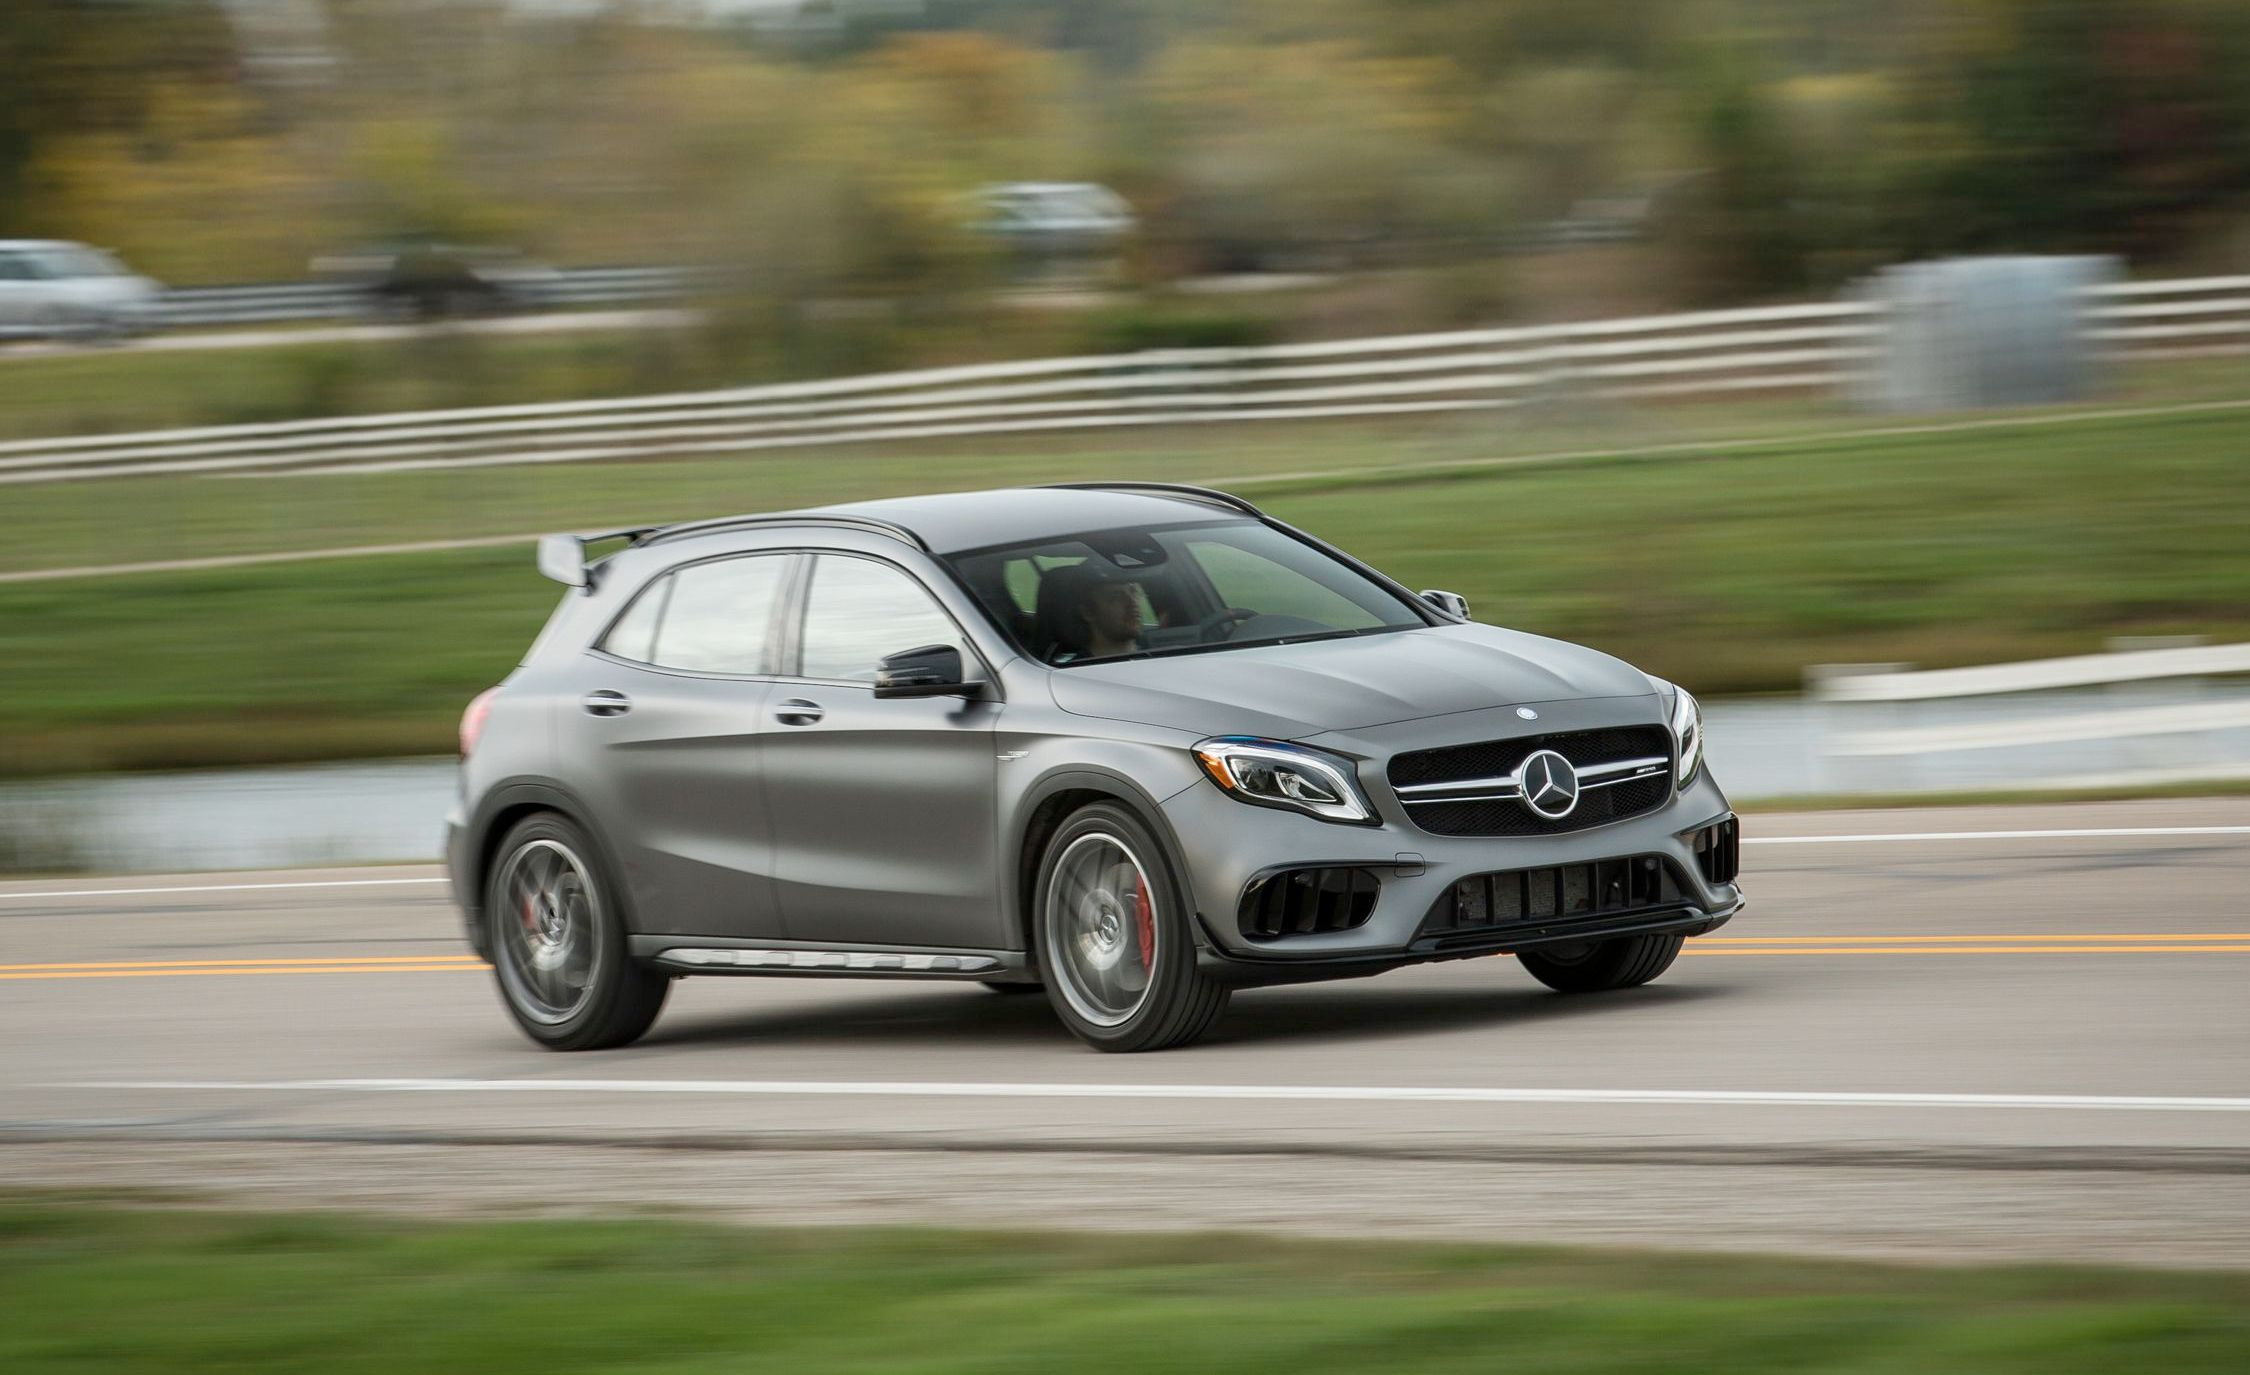 mercedes amg gla45 4matic reviews mercedes amg gla45 4matic price photos and specs car and. Black Bedroom Furniture Sets. Home Design Ideas